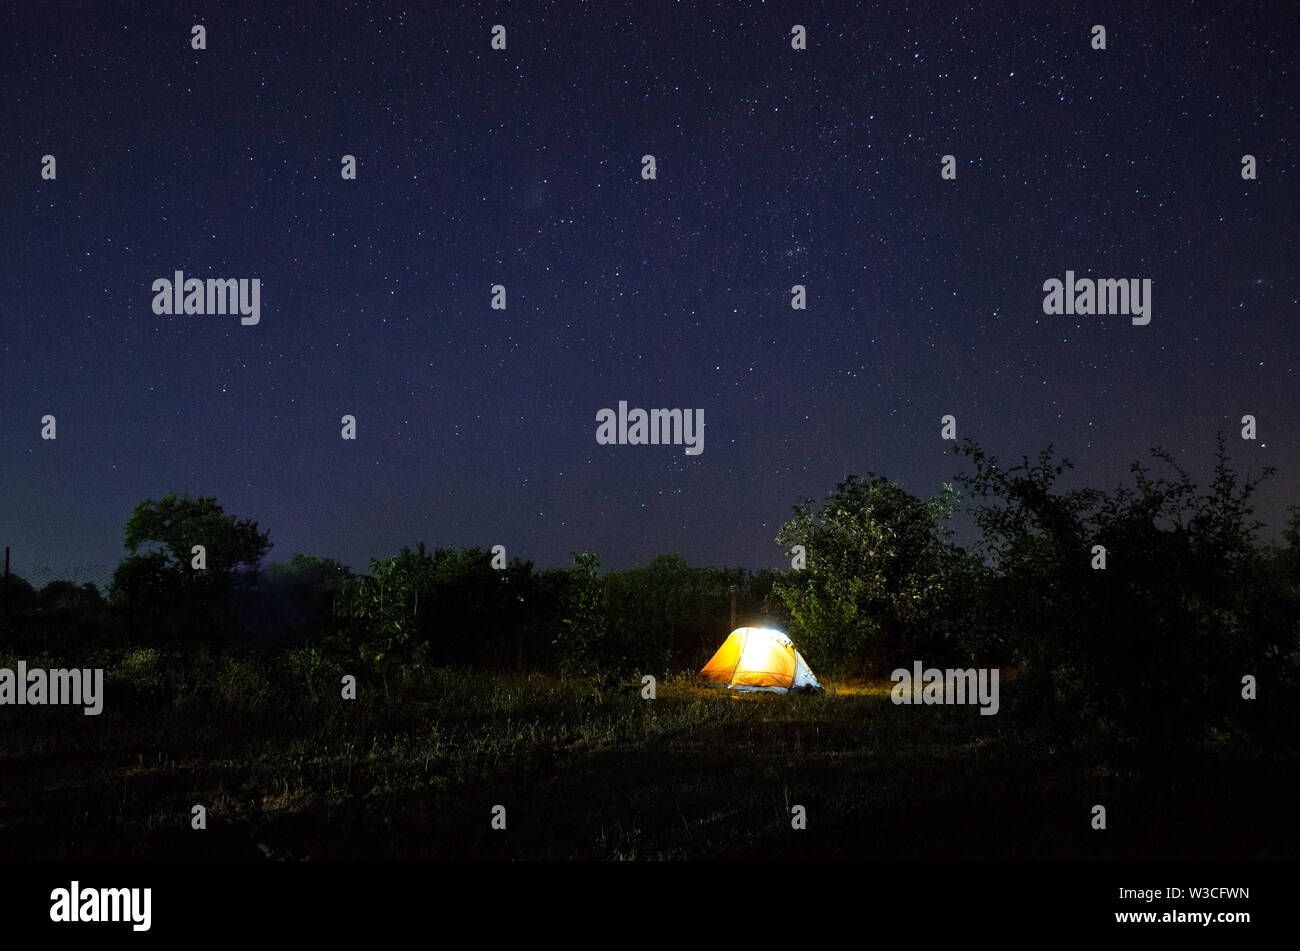 Camping tent under beautiful night sky full of stars. Starry night sky above illuminated touristic tent in the nature. - Stock Image